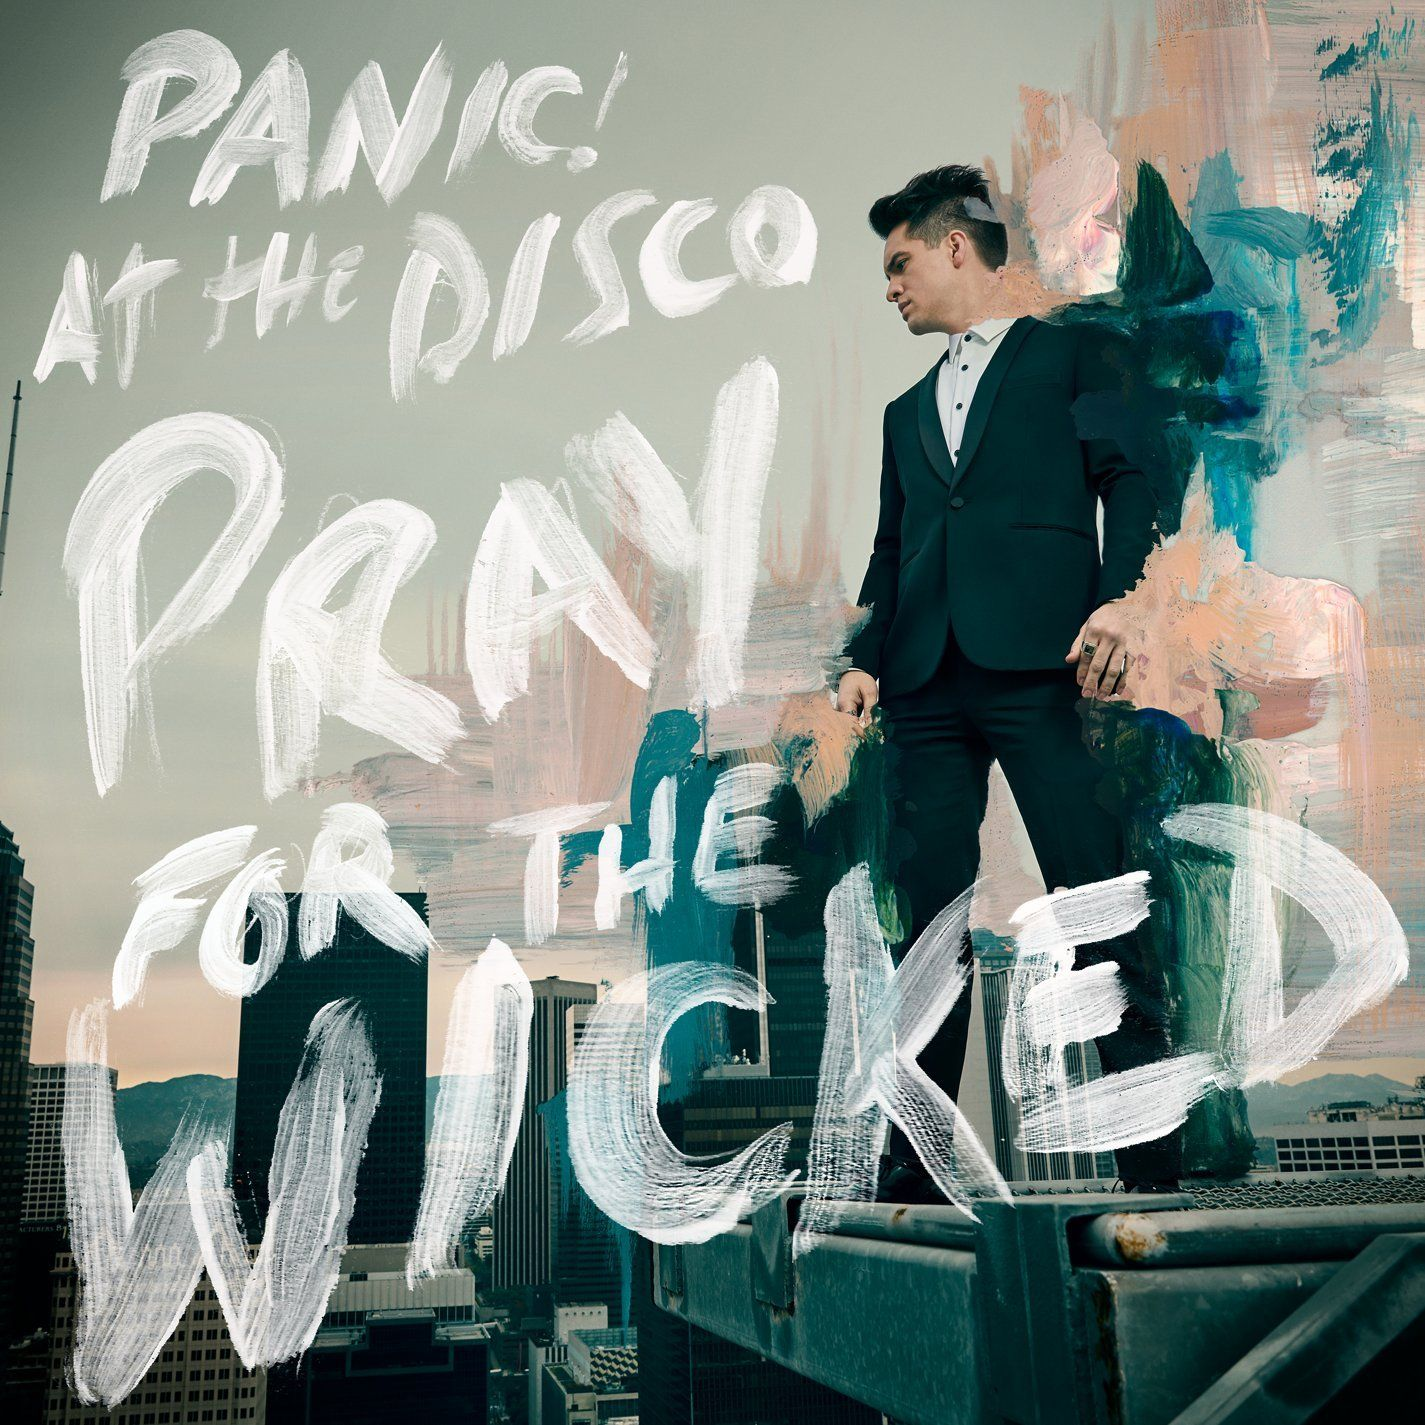 Panic! At The Disco - Pray For The Wicked album cover